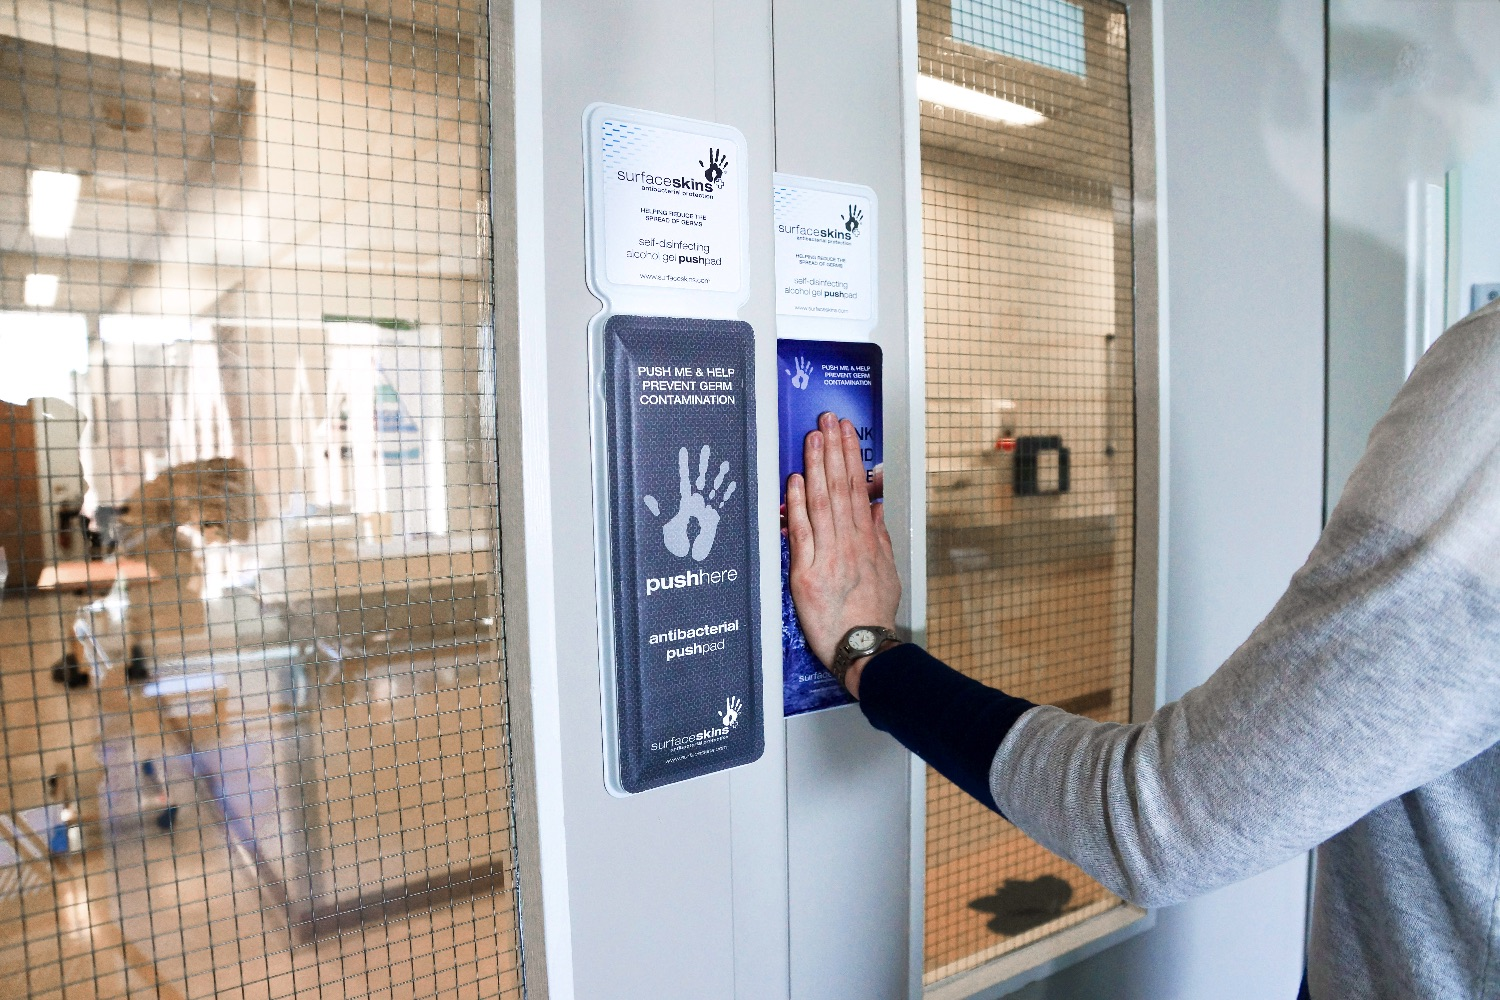 Le Meilleur Self Disinfecting Door Pad Could Help Break The Spread Of Ce Mois Ci